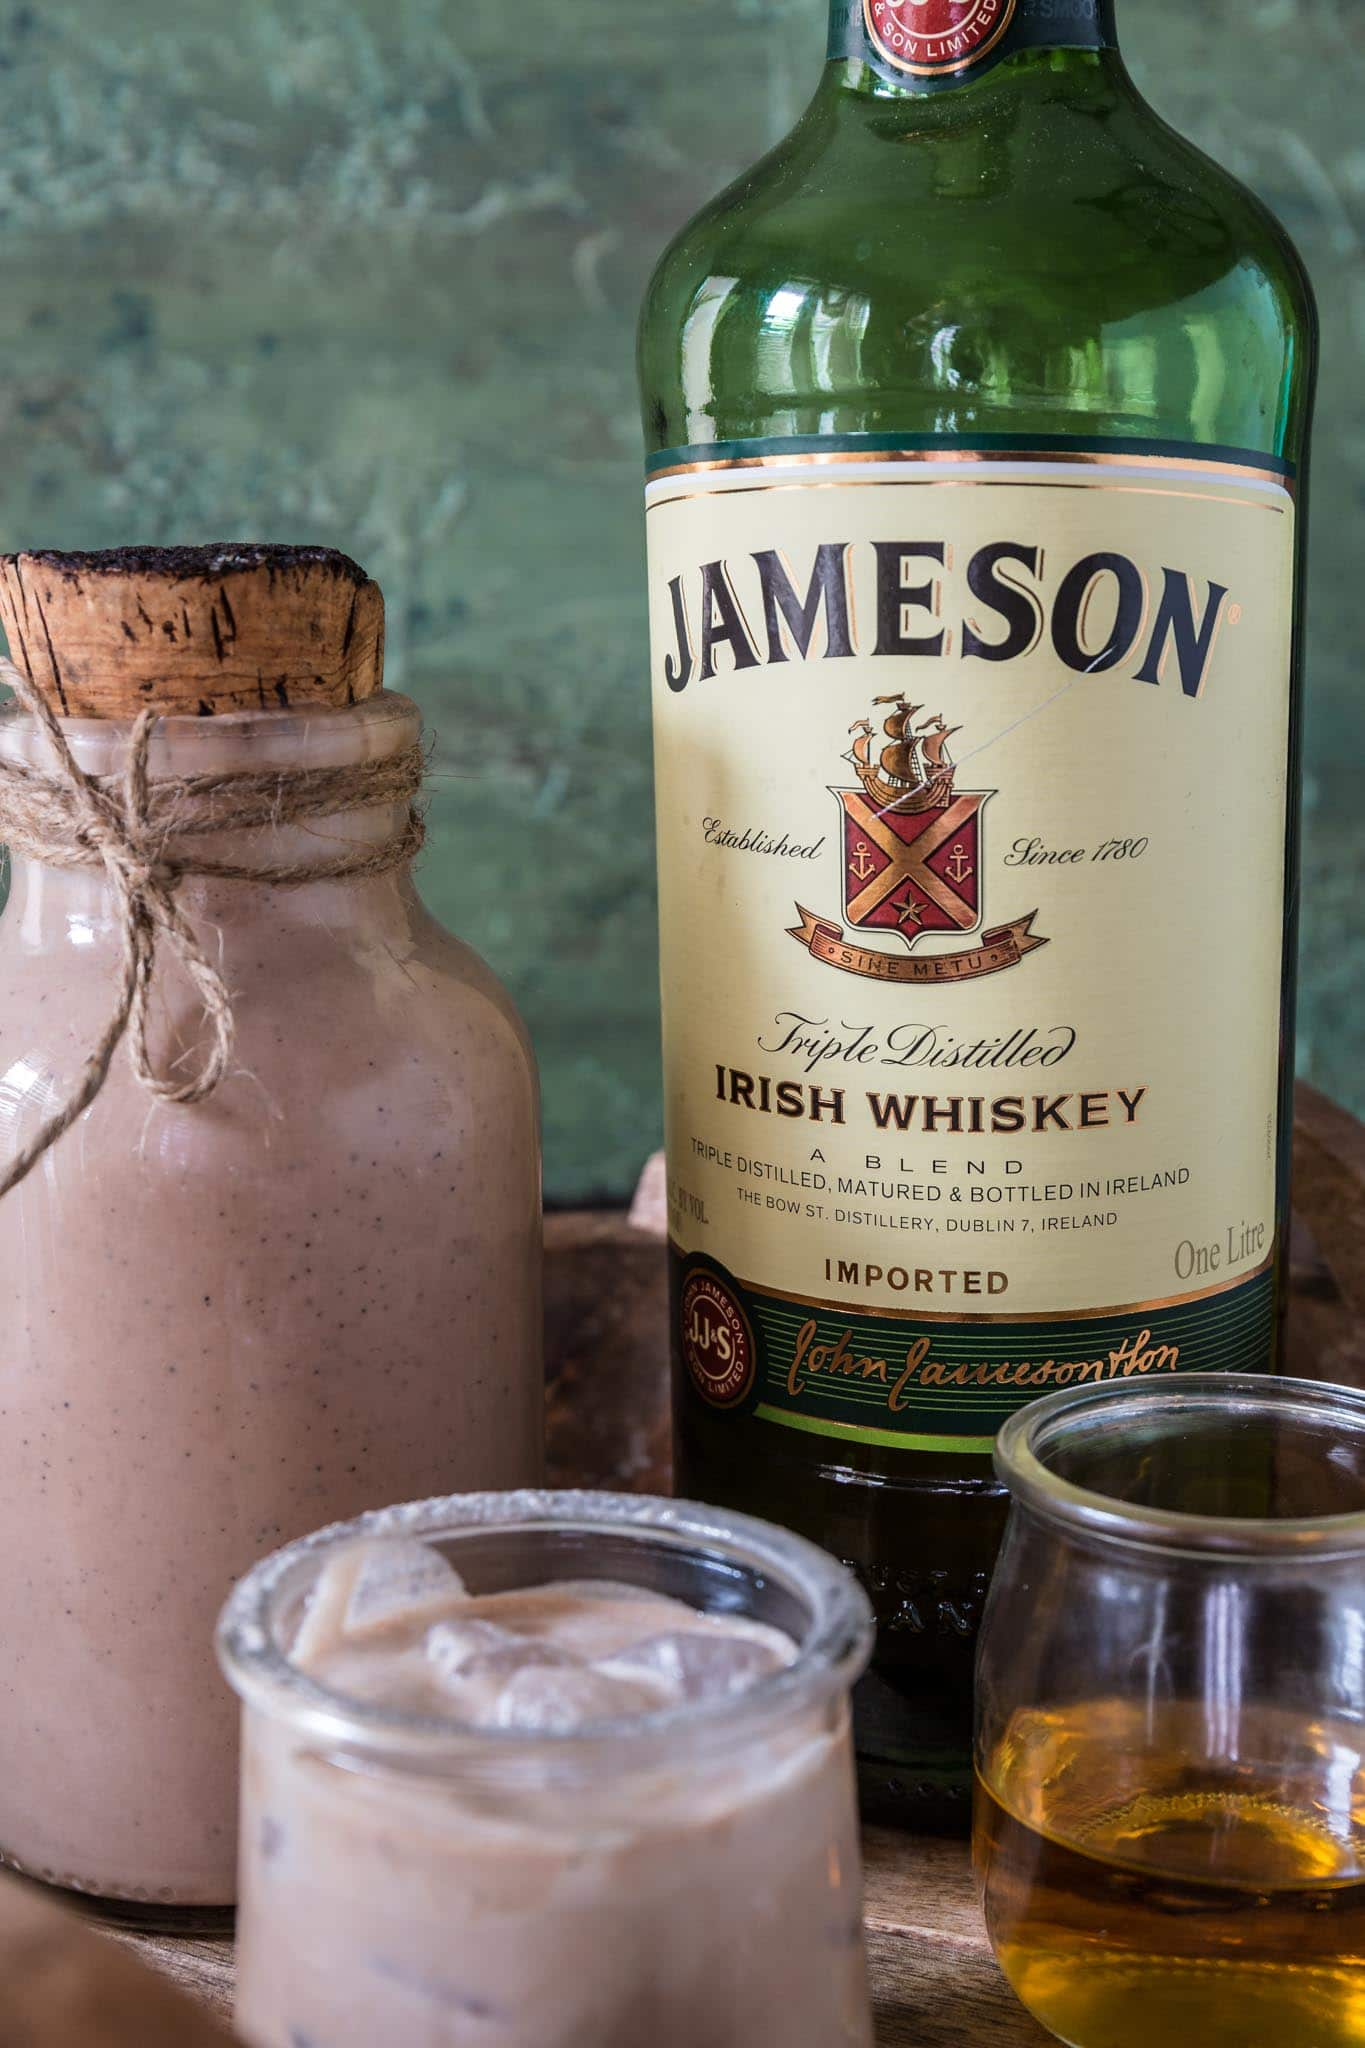 Homemade Irish Cream | www.oliviascuisine.com | Have you ever tried making homemade Irish cream? A blender and a handful of ingredients is all it takes for this do-it-yourself version of Bailey's. Smooth, creamy and perfect for St. Patrick's Day! (Recipe and food photography by @oliviascuisine.)